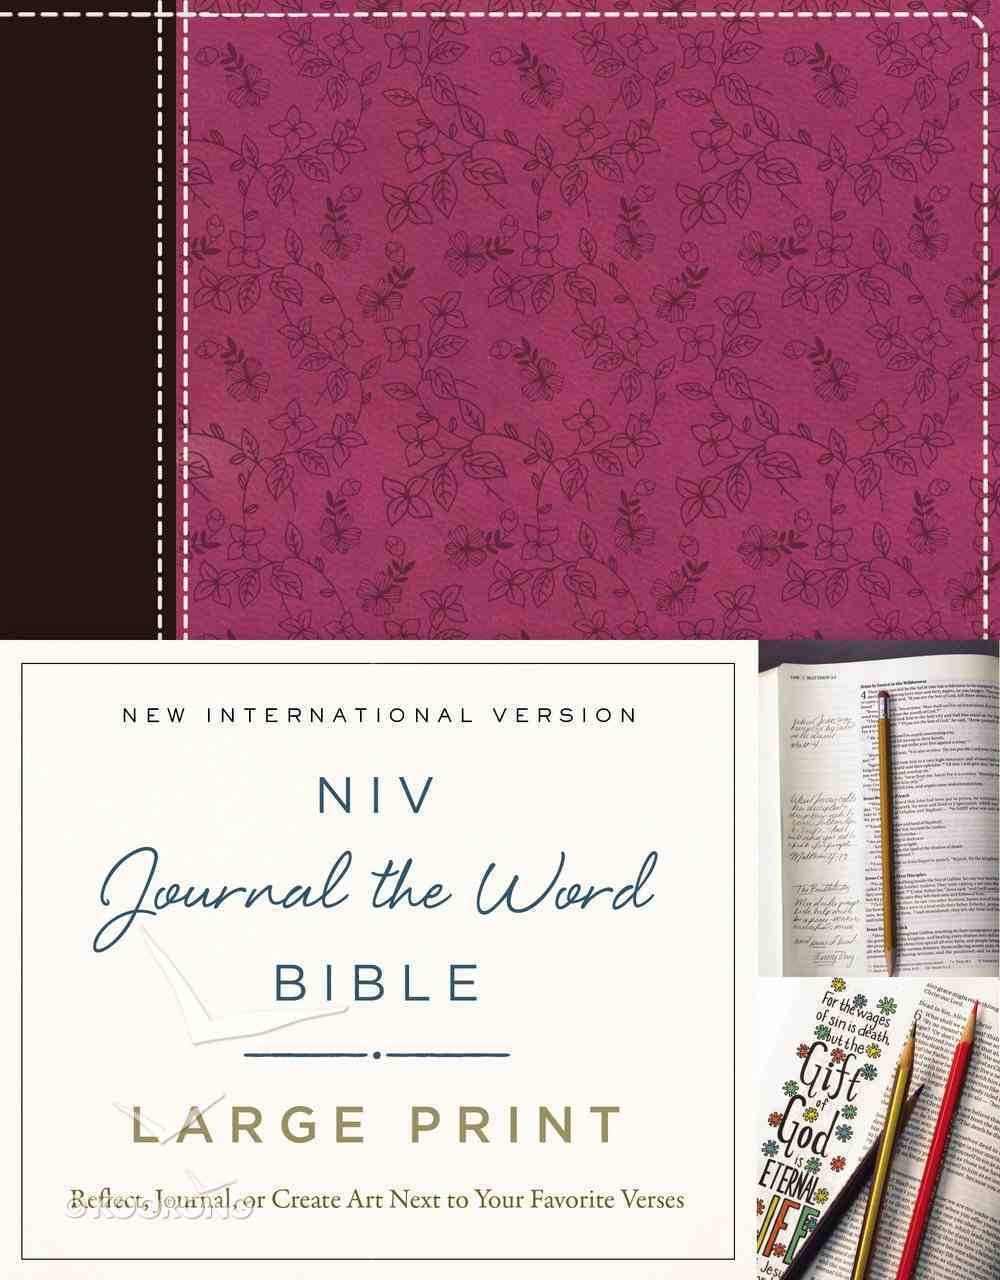 NIV Journal the Word Bible Large Print Pink/Brown (Black Letter Edition) Premium Imitation Leather